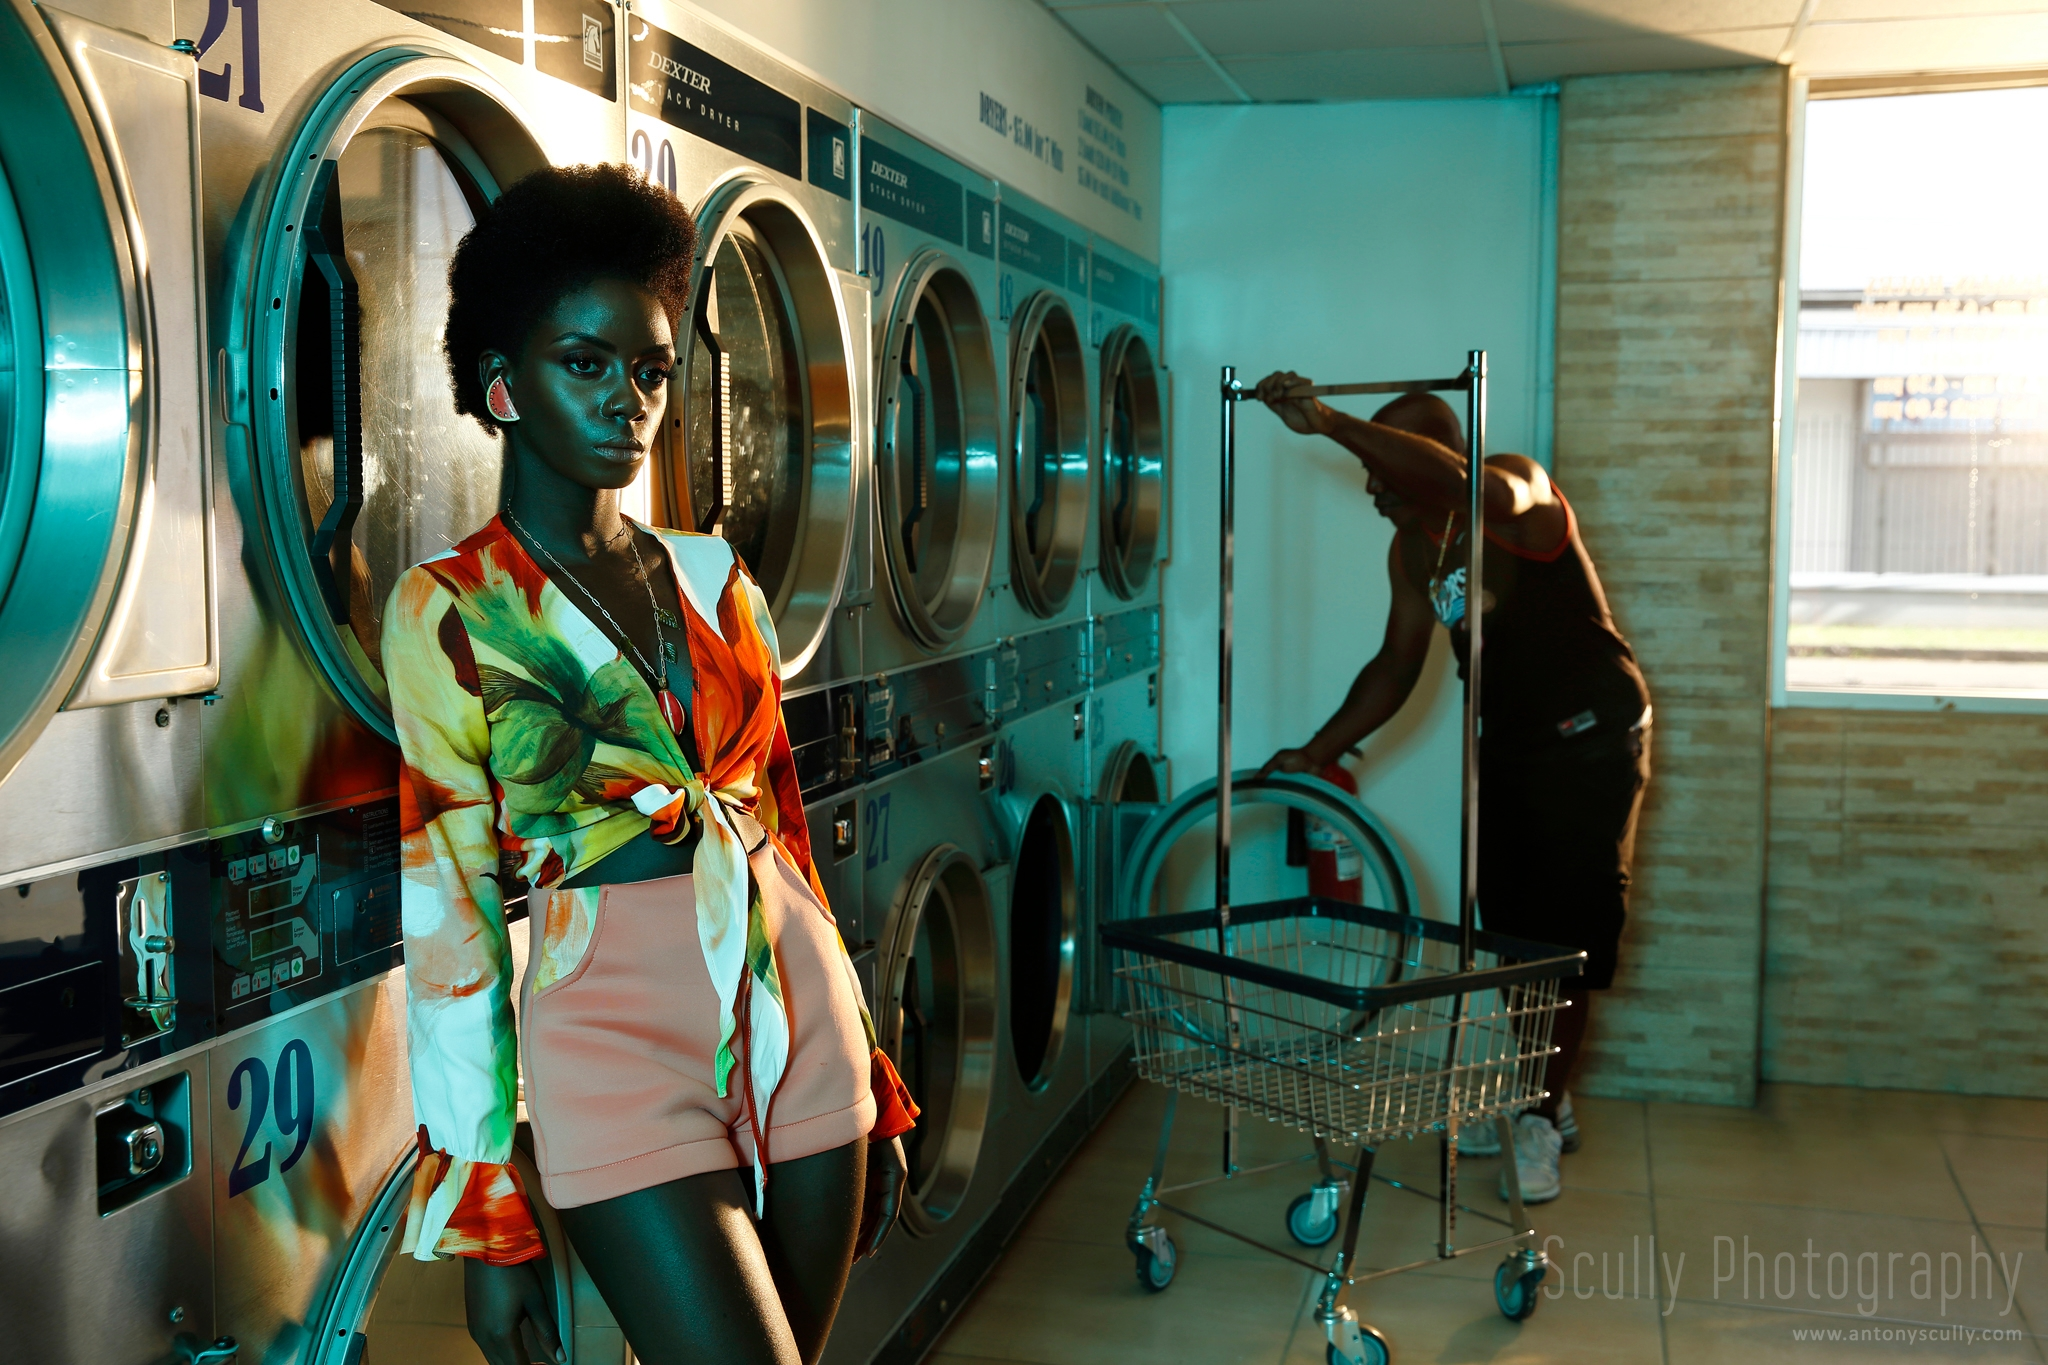 laundromat series. Stereotypica - scullyphoto | ello